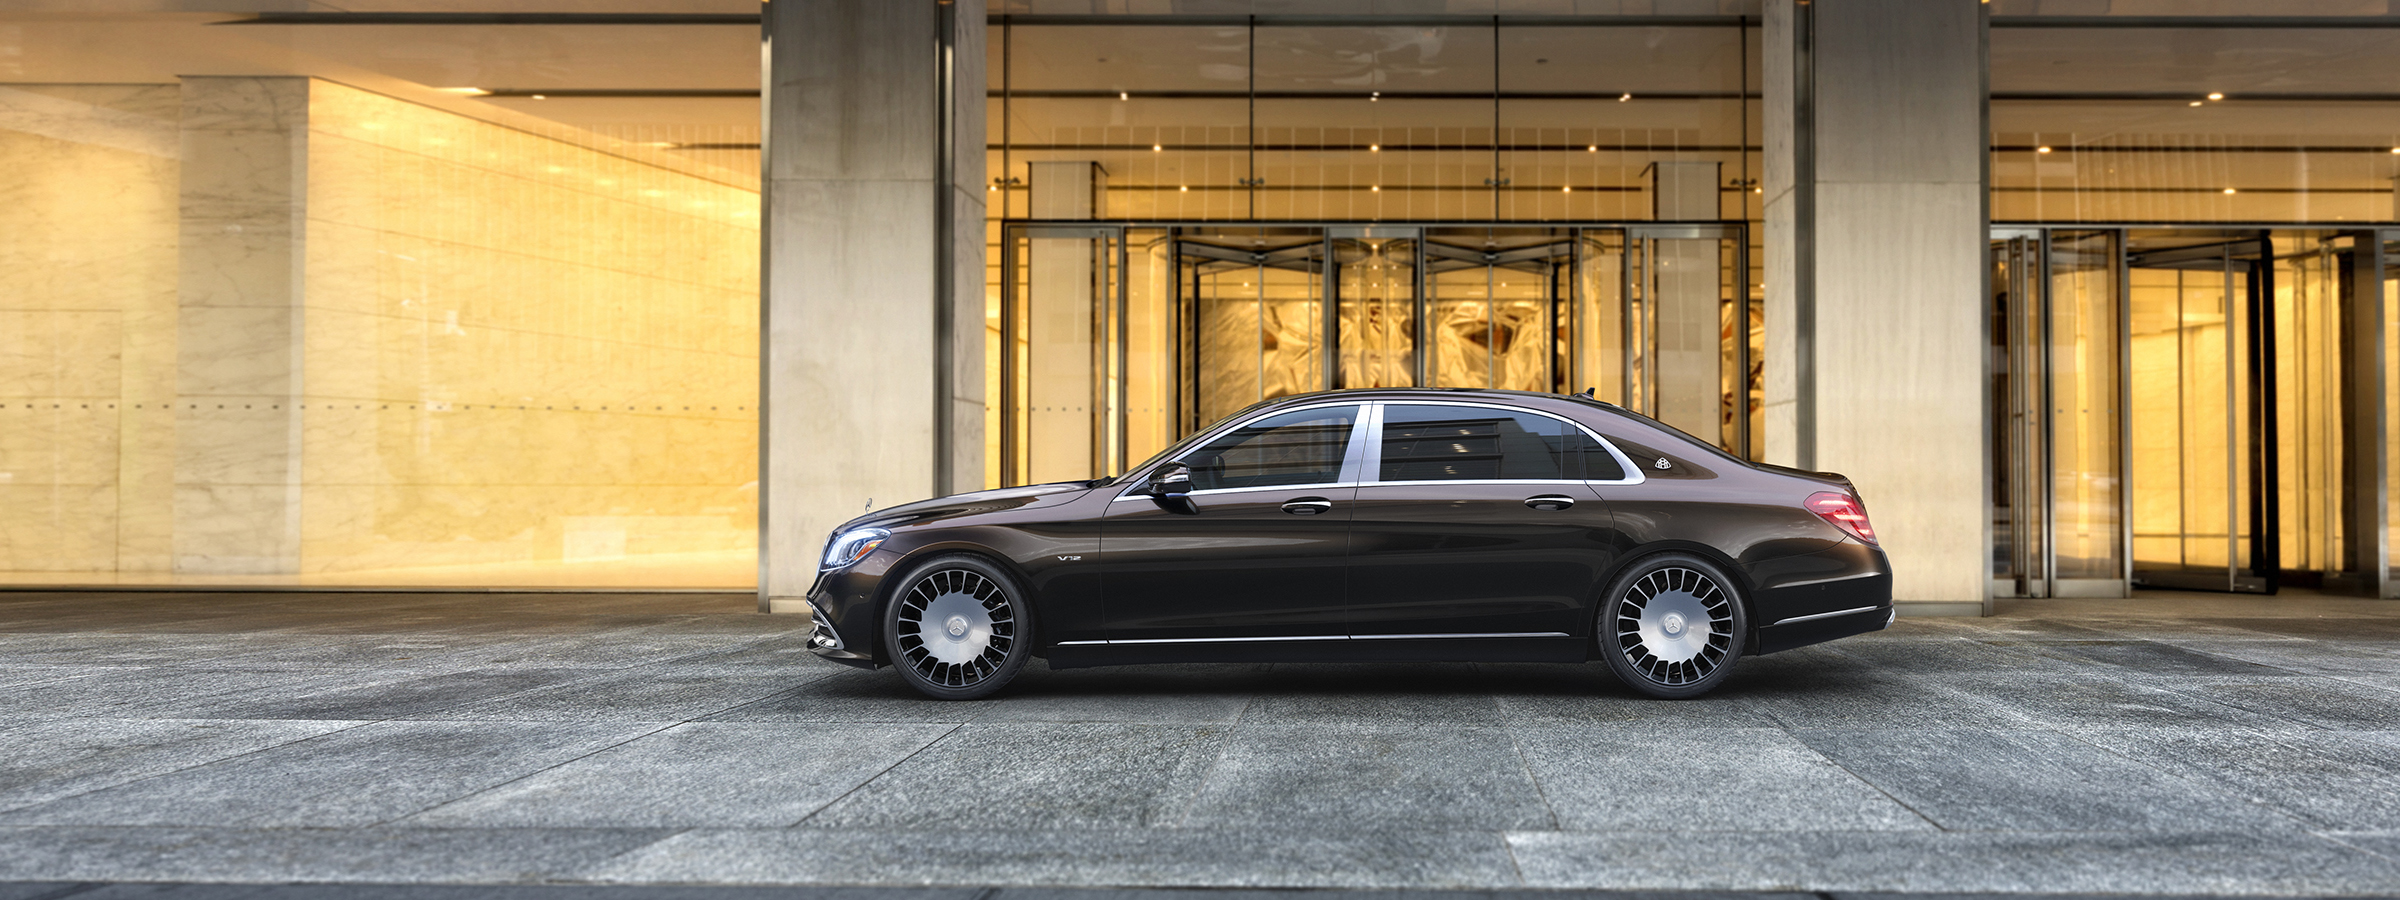 2018 redesigned mercedes maybach mercedes benz for Mercedes benz maybach